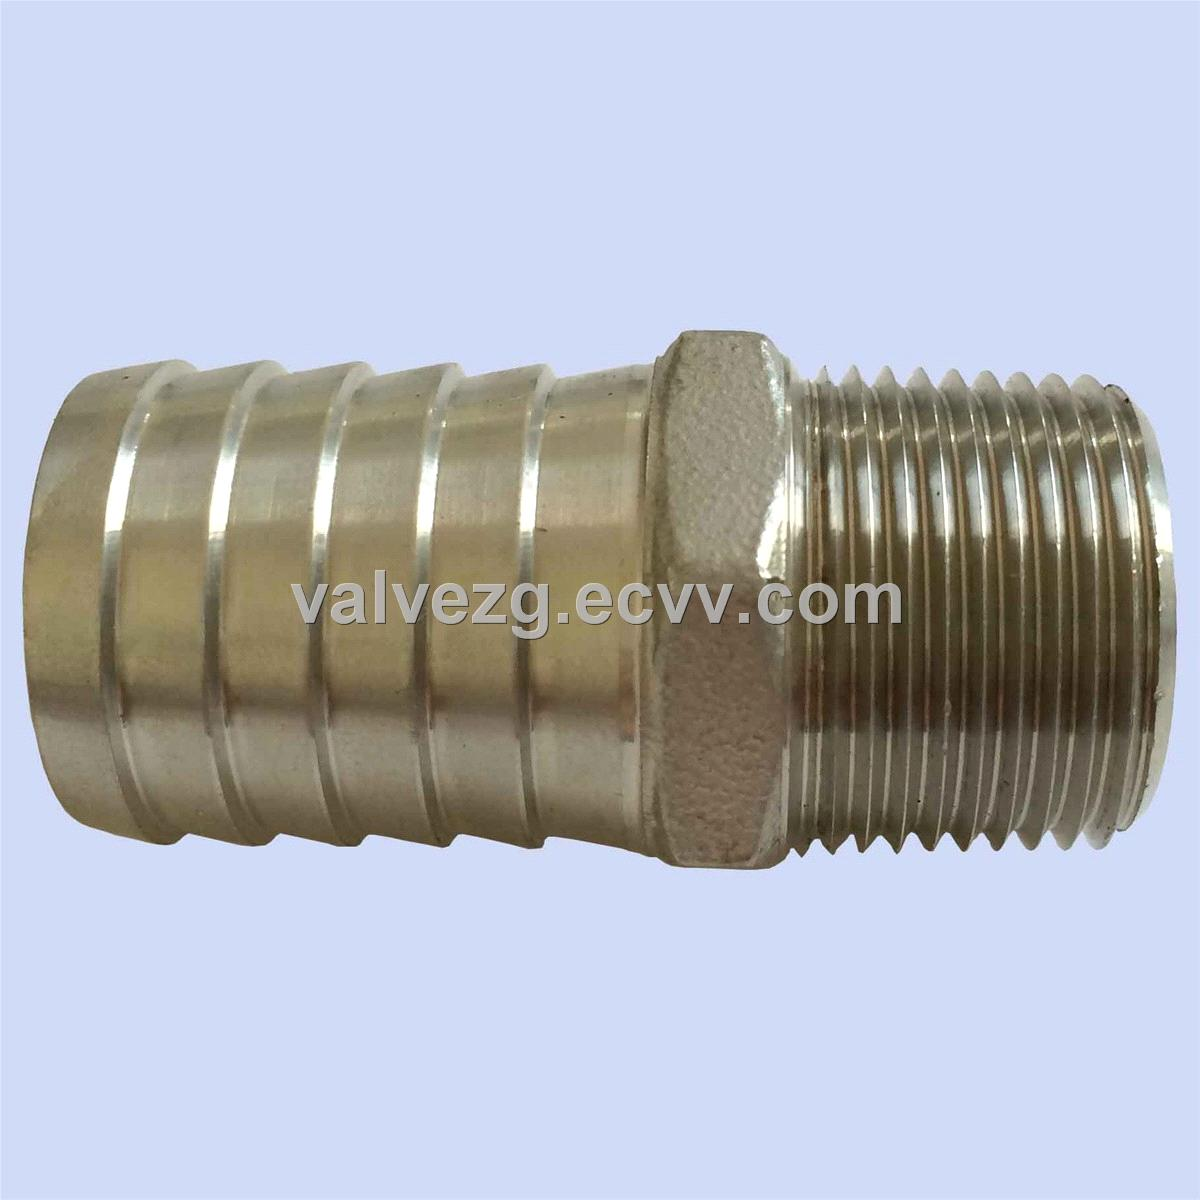 Stainless steel hose nipple purchasing souring agent